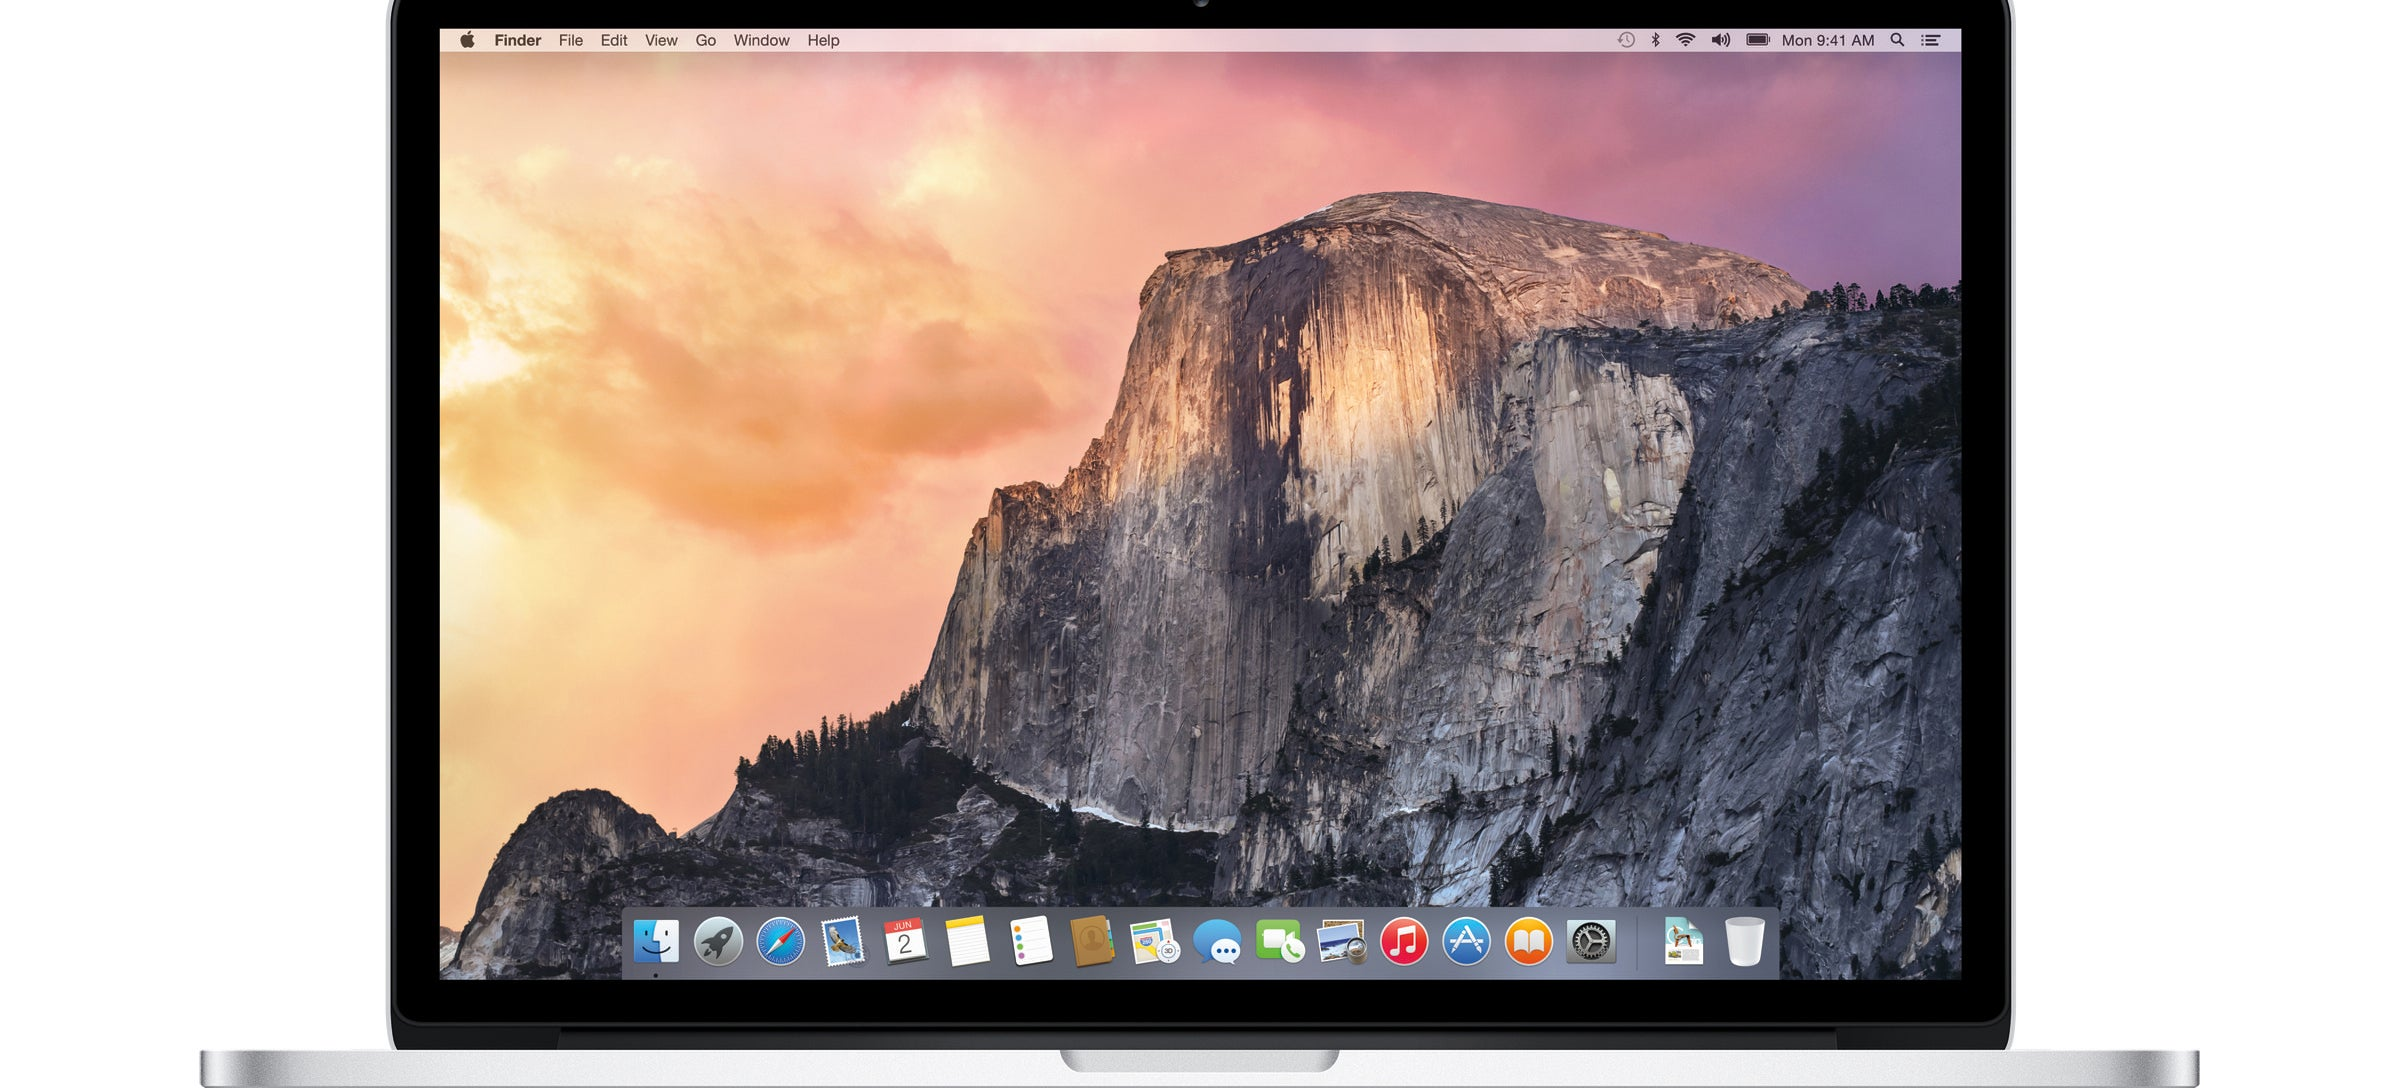 OS X Yosemite: Everything You Need to Know About the Biggest Redesign